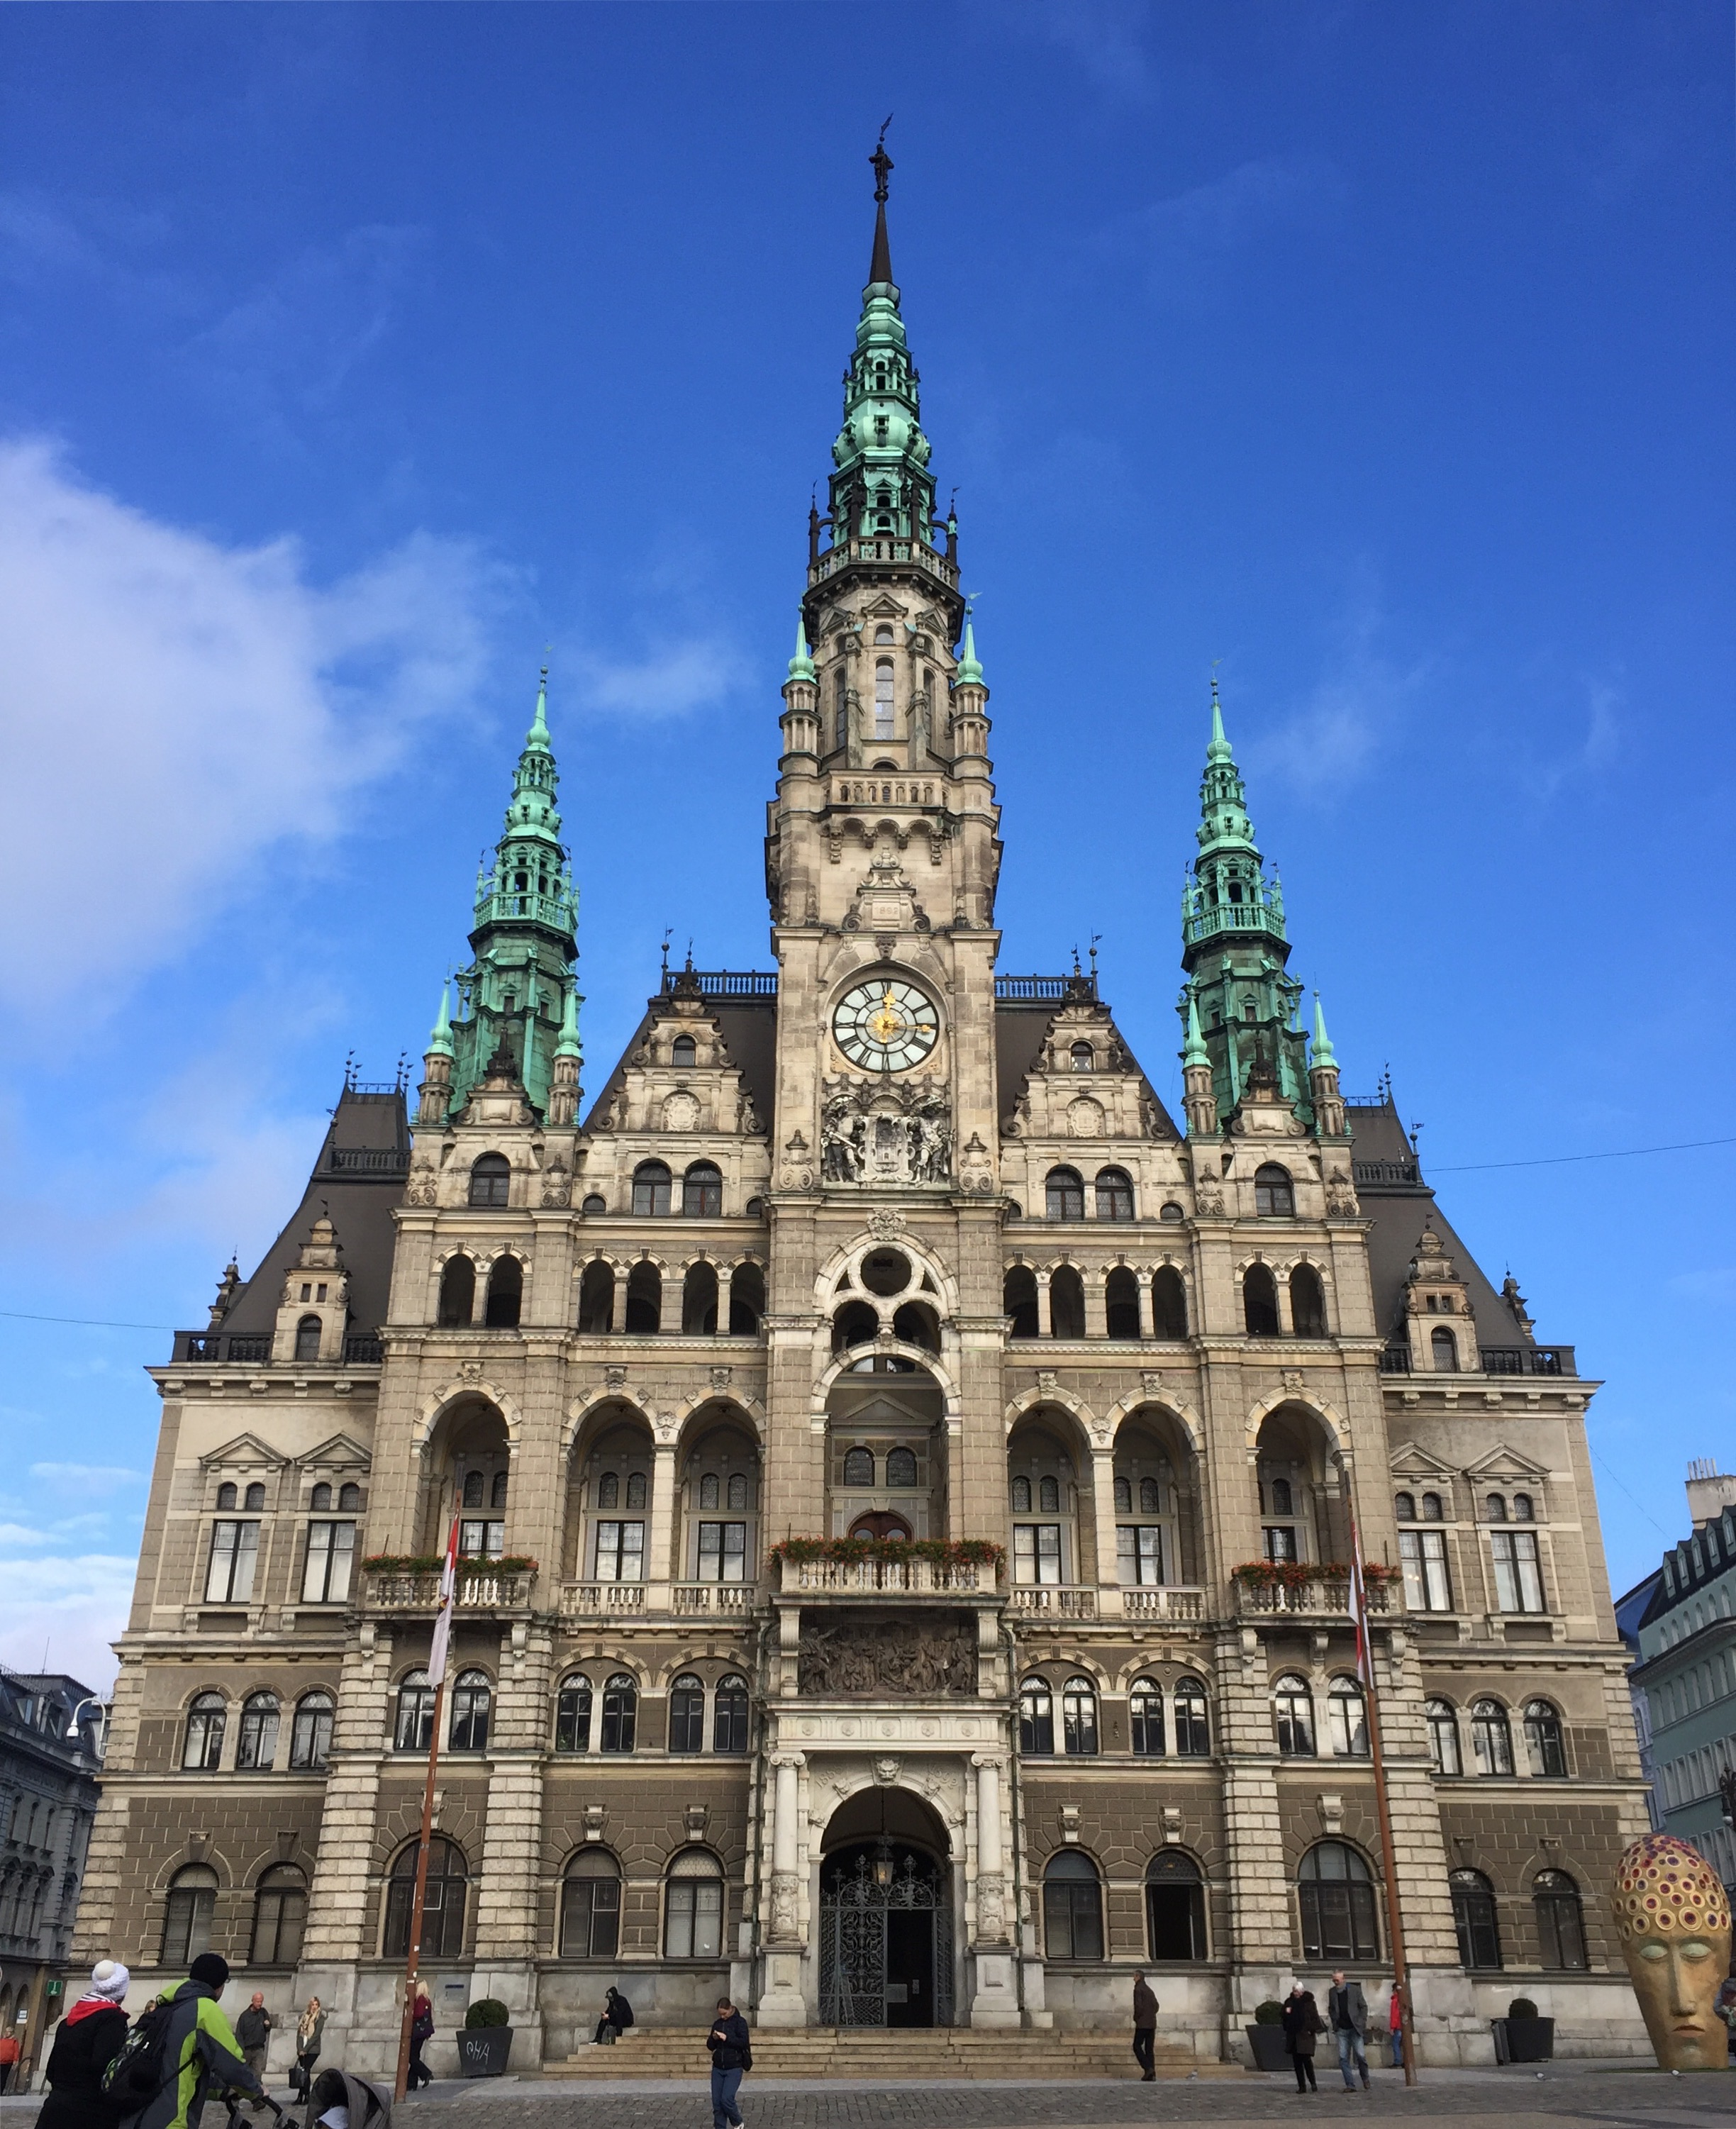 The town hall in Liberec.